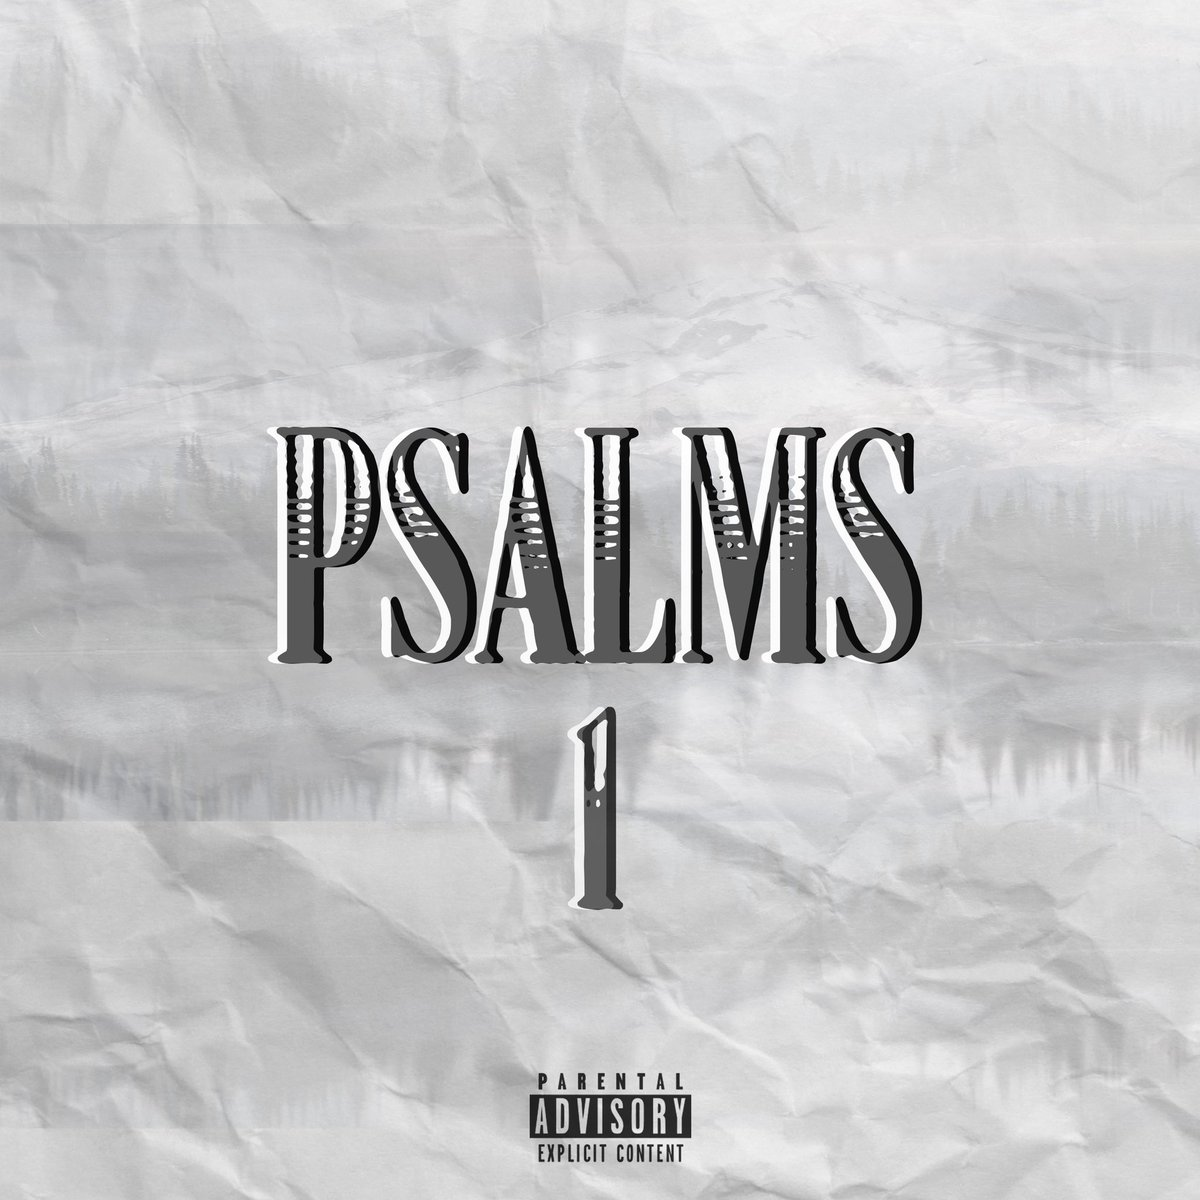 """TUNDÉ - """"PSALMS 1"""" (feat. @ForeverJabron ) . GET THIS SONG NOW:  https://t.co/4BDiv9622q . 🎤 @blackflag_tunde . 🎤 @foreverjabron . . #blackflag #blkflg #mosthigh #dreamgang #kinfolk #illmindz #carolina #hiphop #realrap #underground https://t.co/3dG0LoMuL8"""